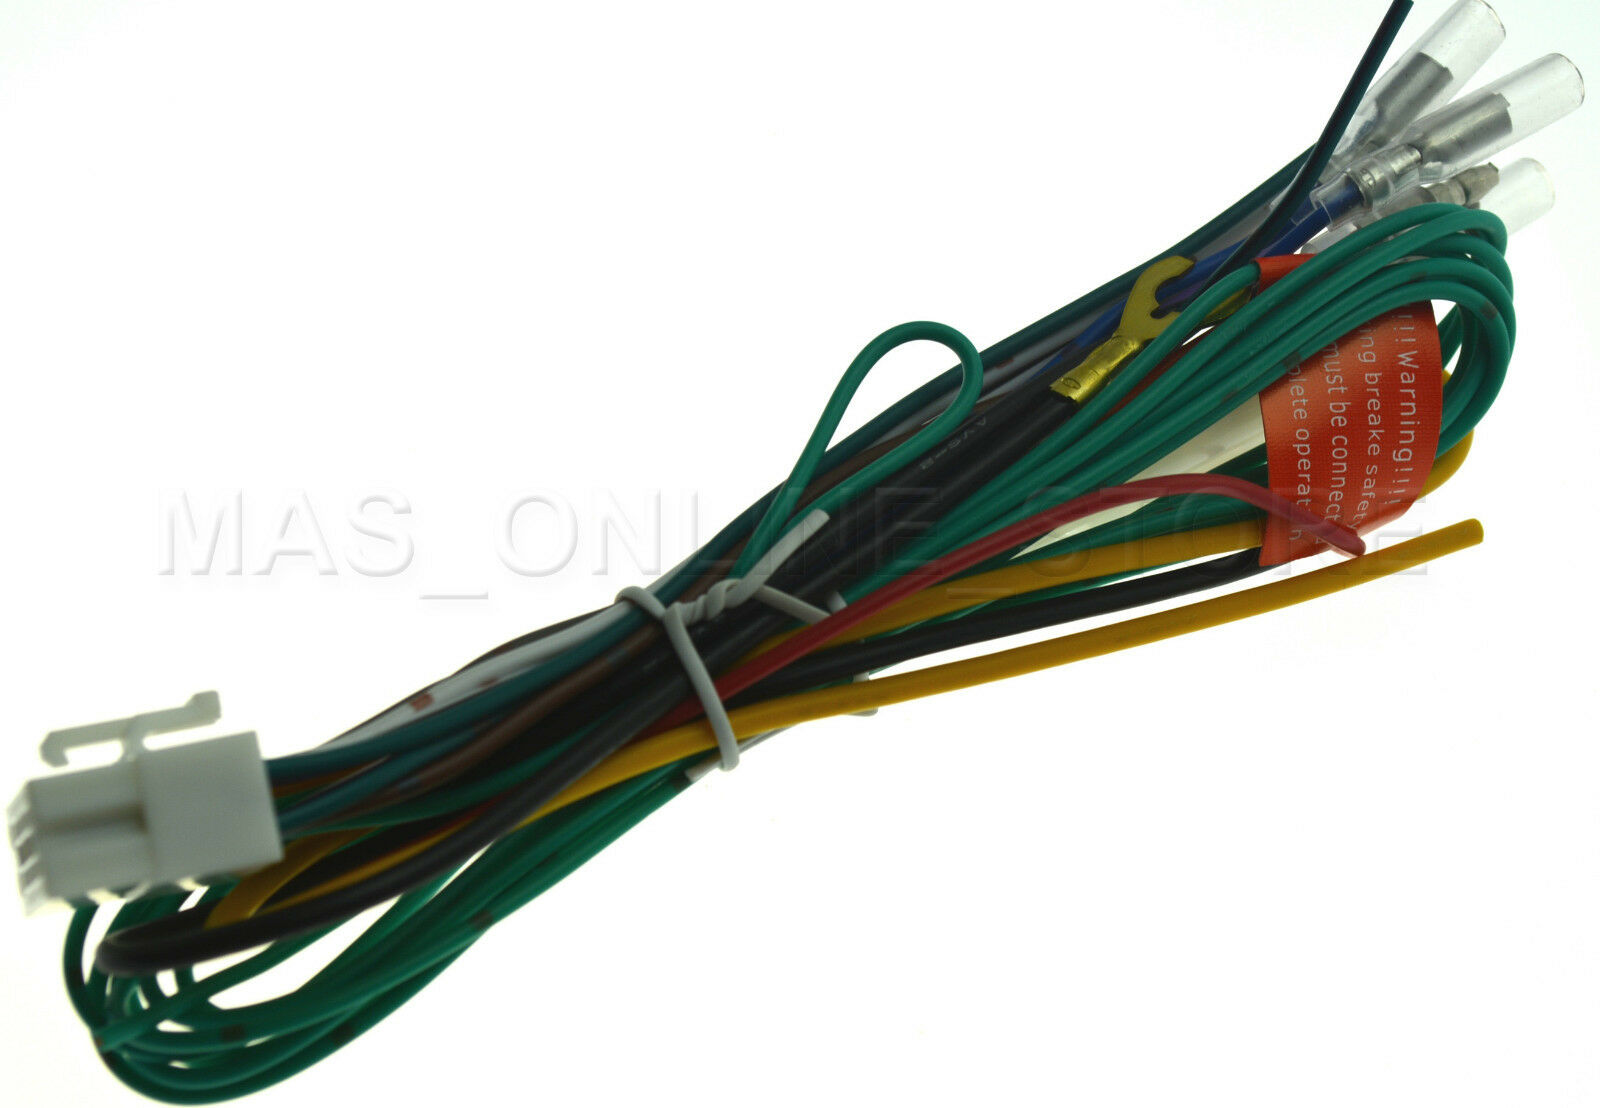 Clarion Vx 409 Vx409 Genuine Power Wire Harness pay cz 101 clarion wiring diagram dolgular com clarion cz500 wiring diagram at panicattacktreatment.co